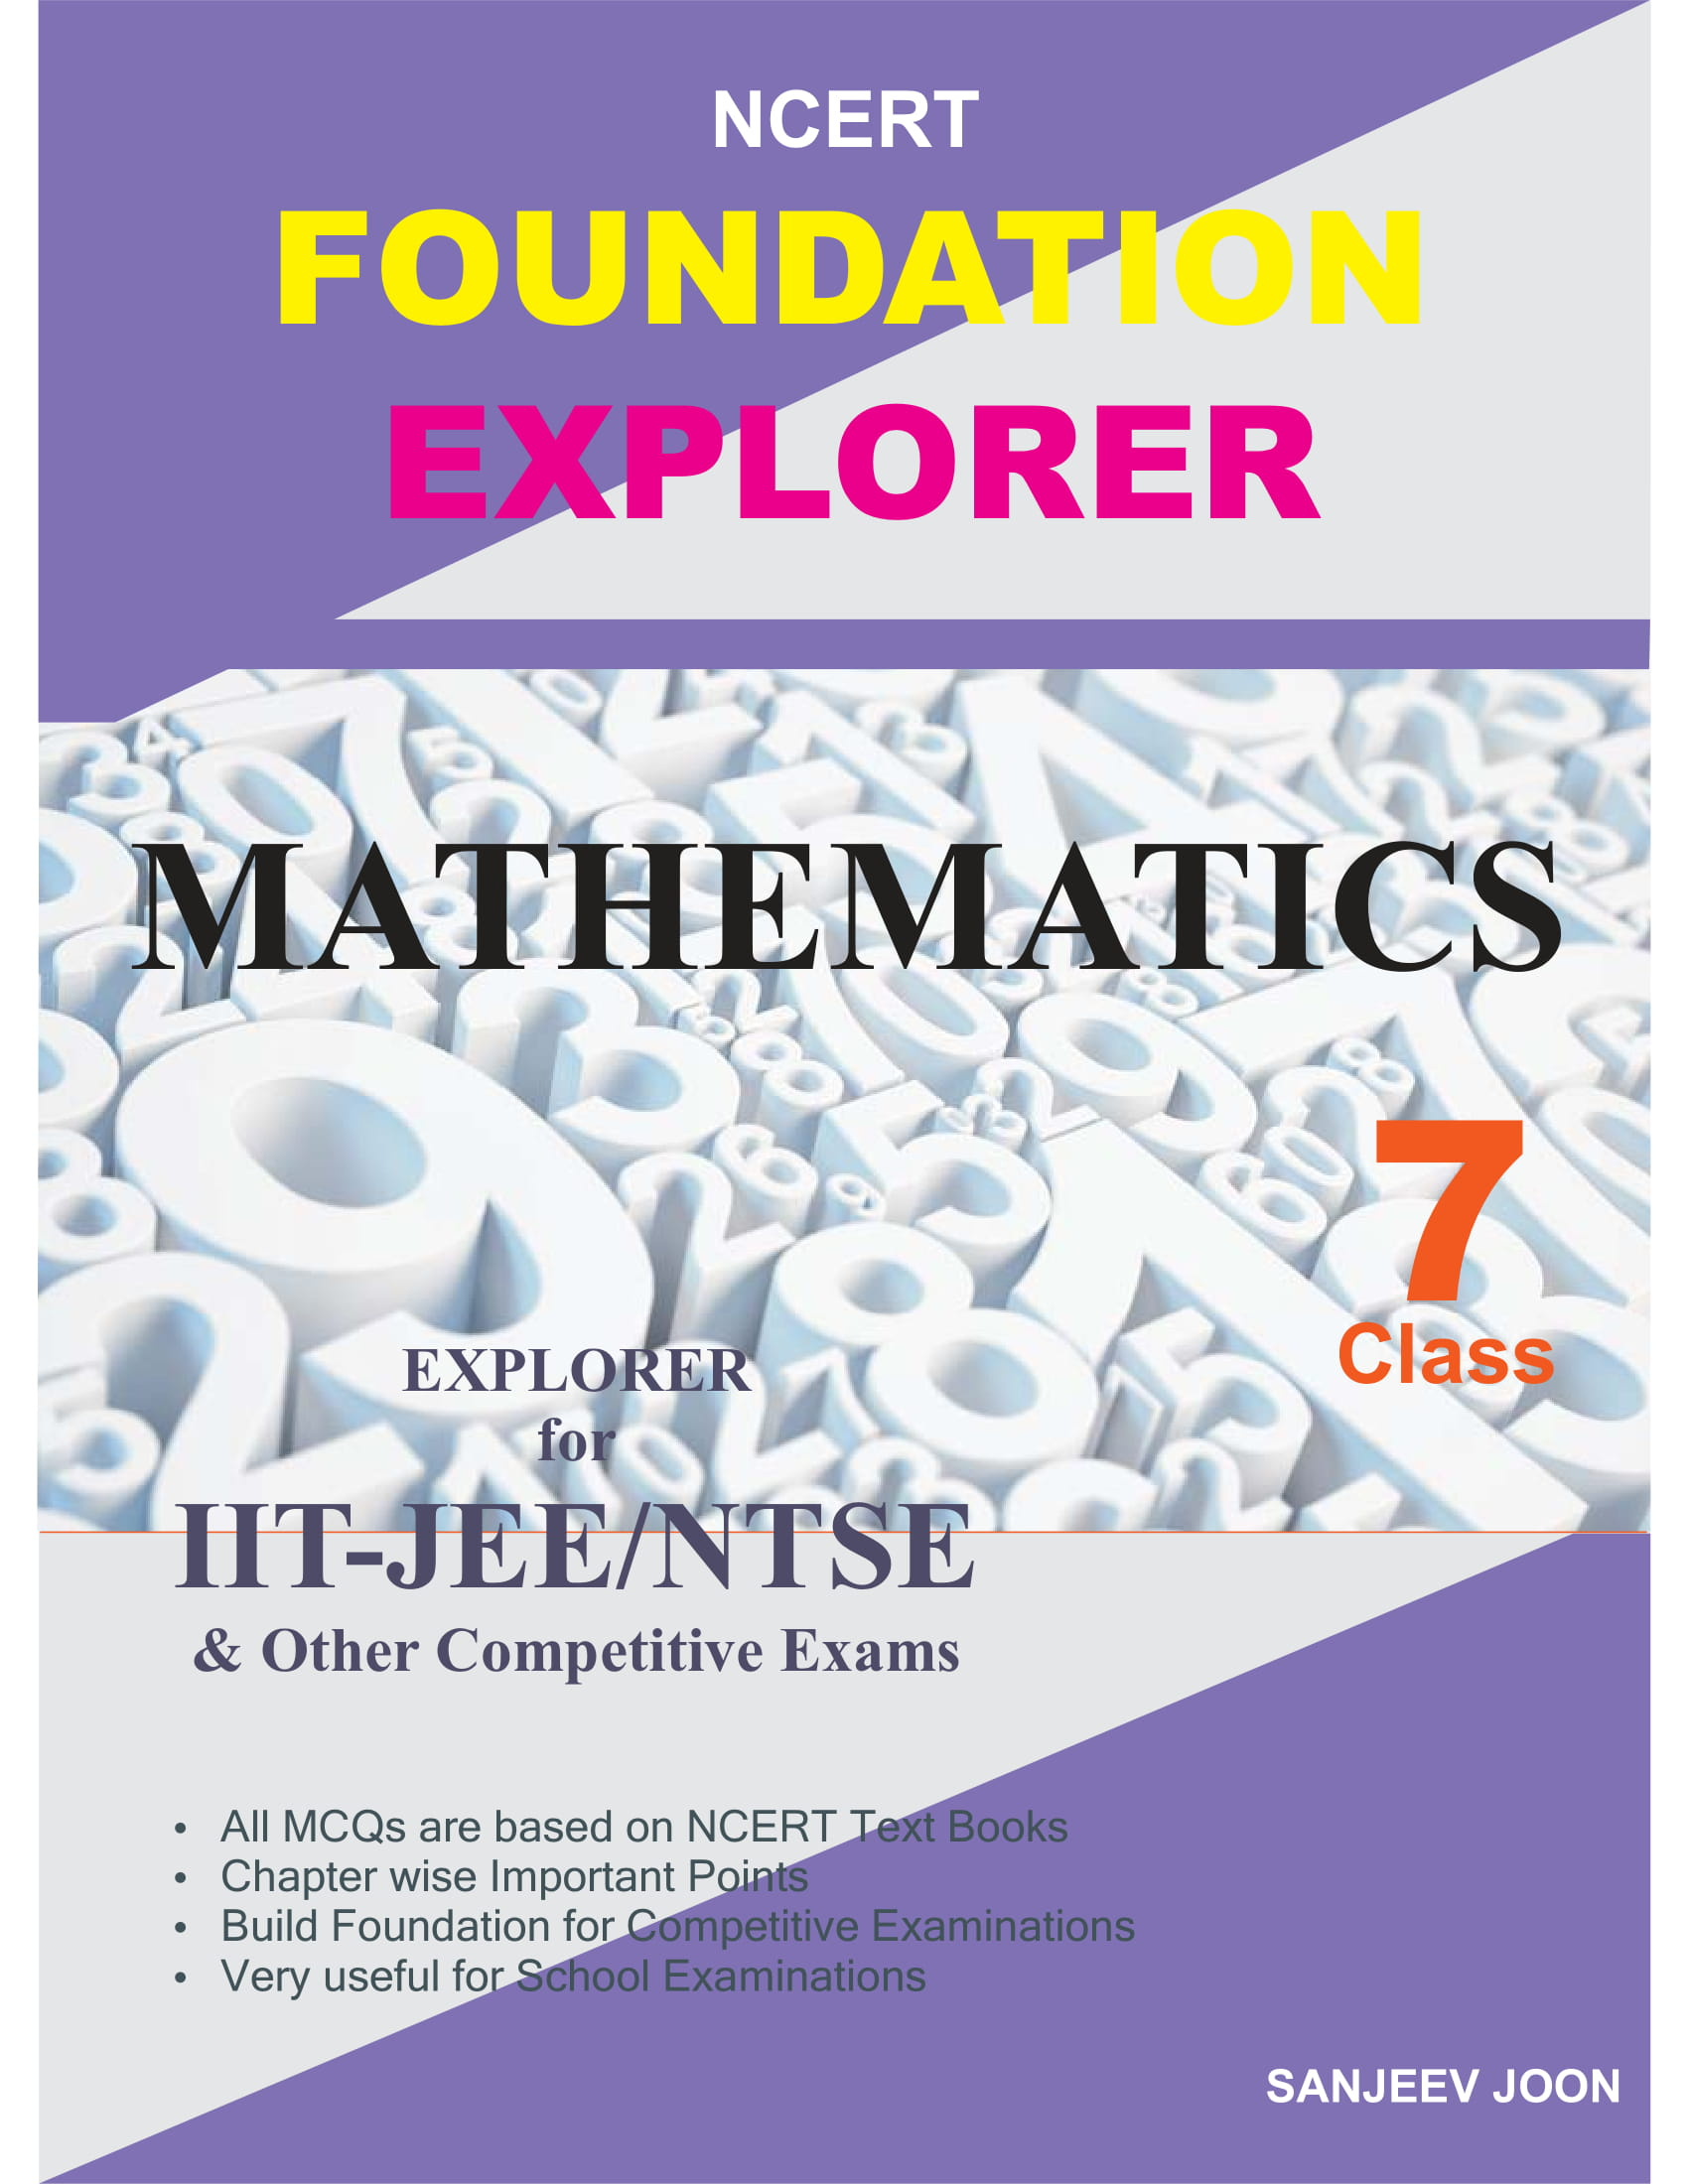 NCERT FOUNDATION EXPLORER MATHEMATICS CLASS-7